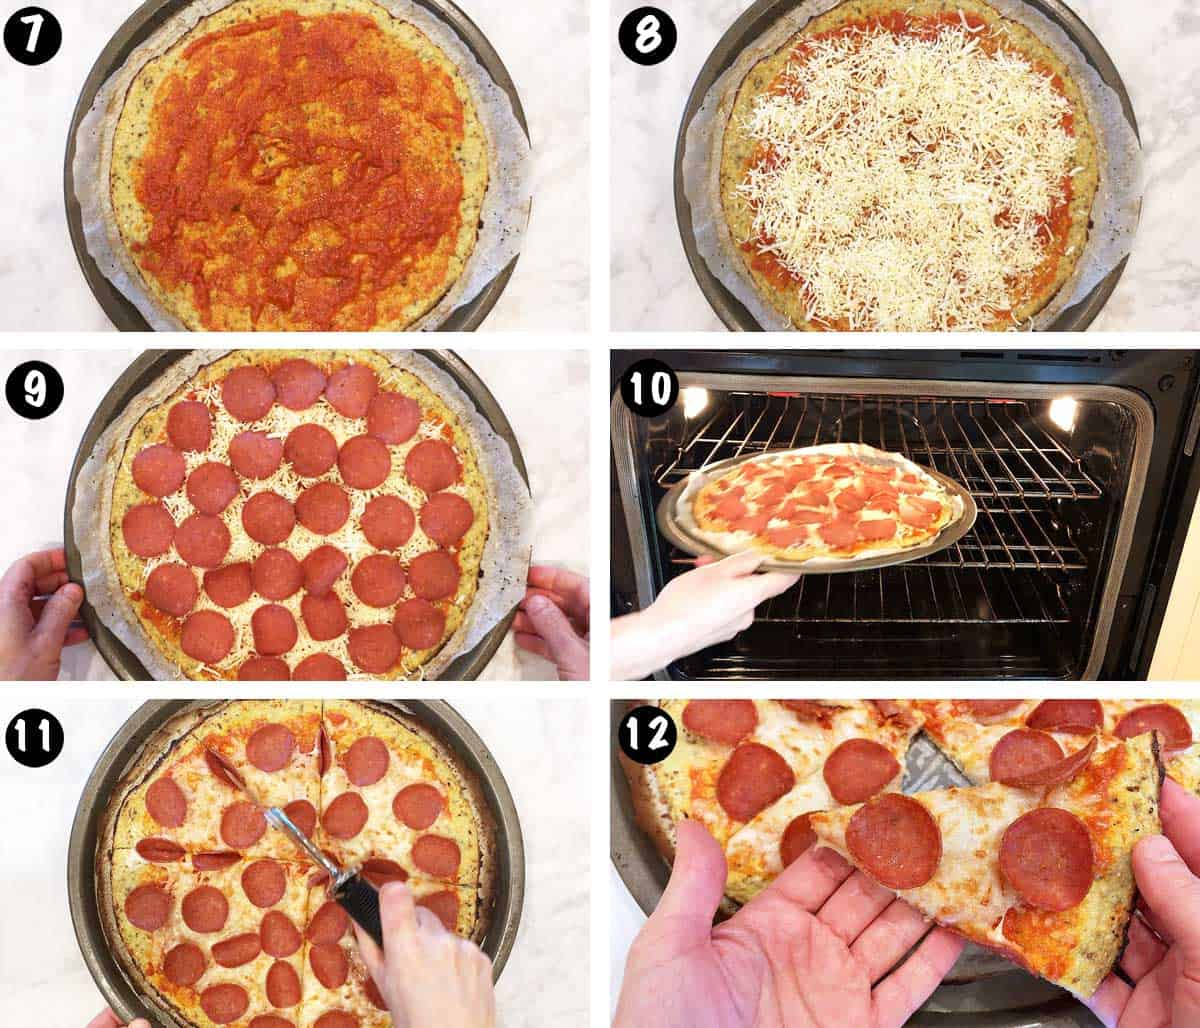 A photo collage showing steps 7-12 for making a pizza crust out of cauliflower.